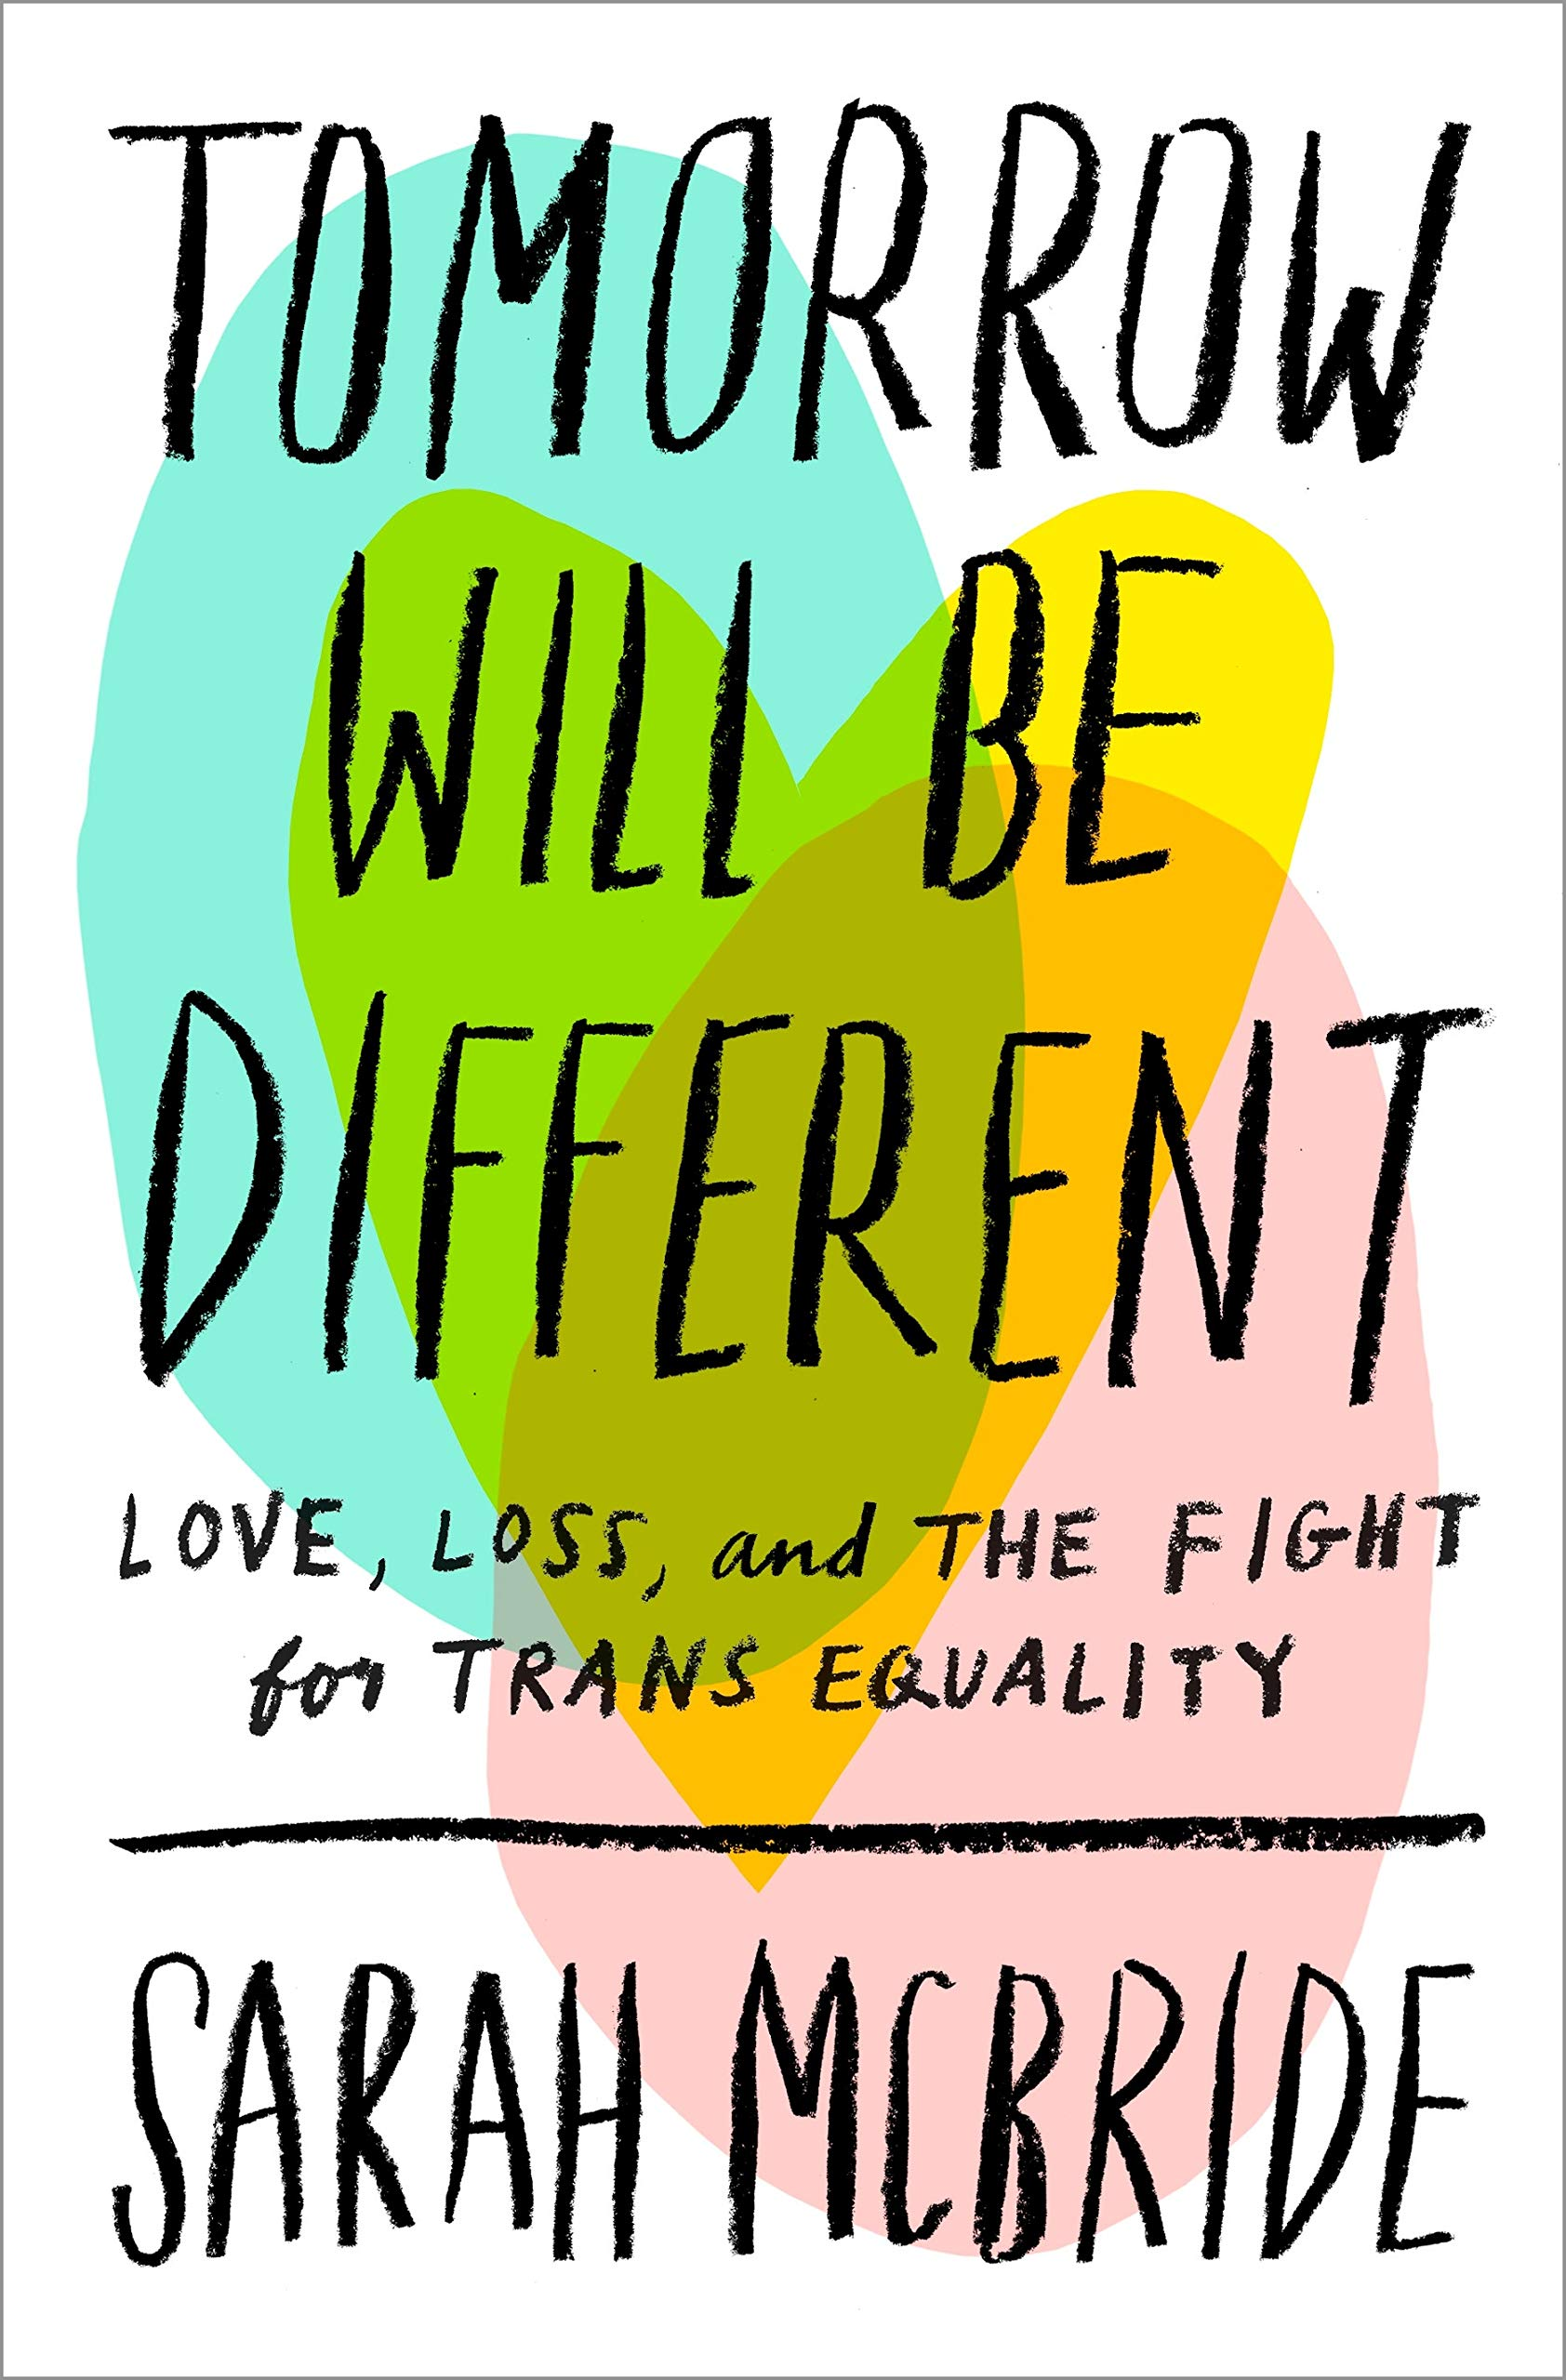 Amazon.com: Tomorrow Will Be Different: Love, Loss, and the Fight for Trans  Equality (9781524761479): McBride, Sarah, Biden, Joe: Books